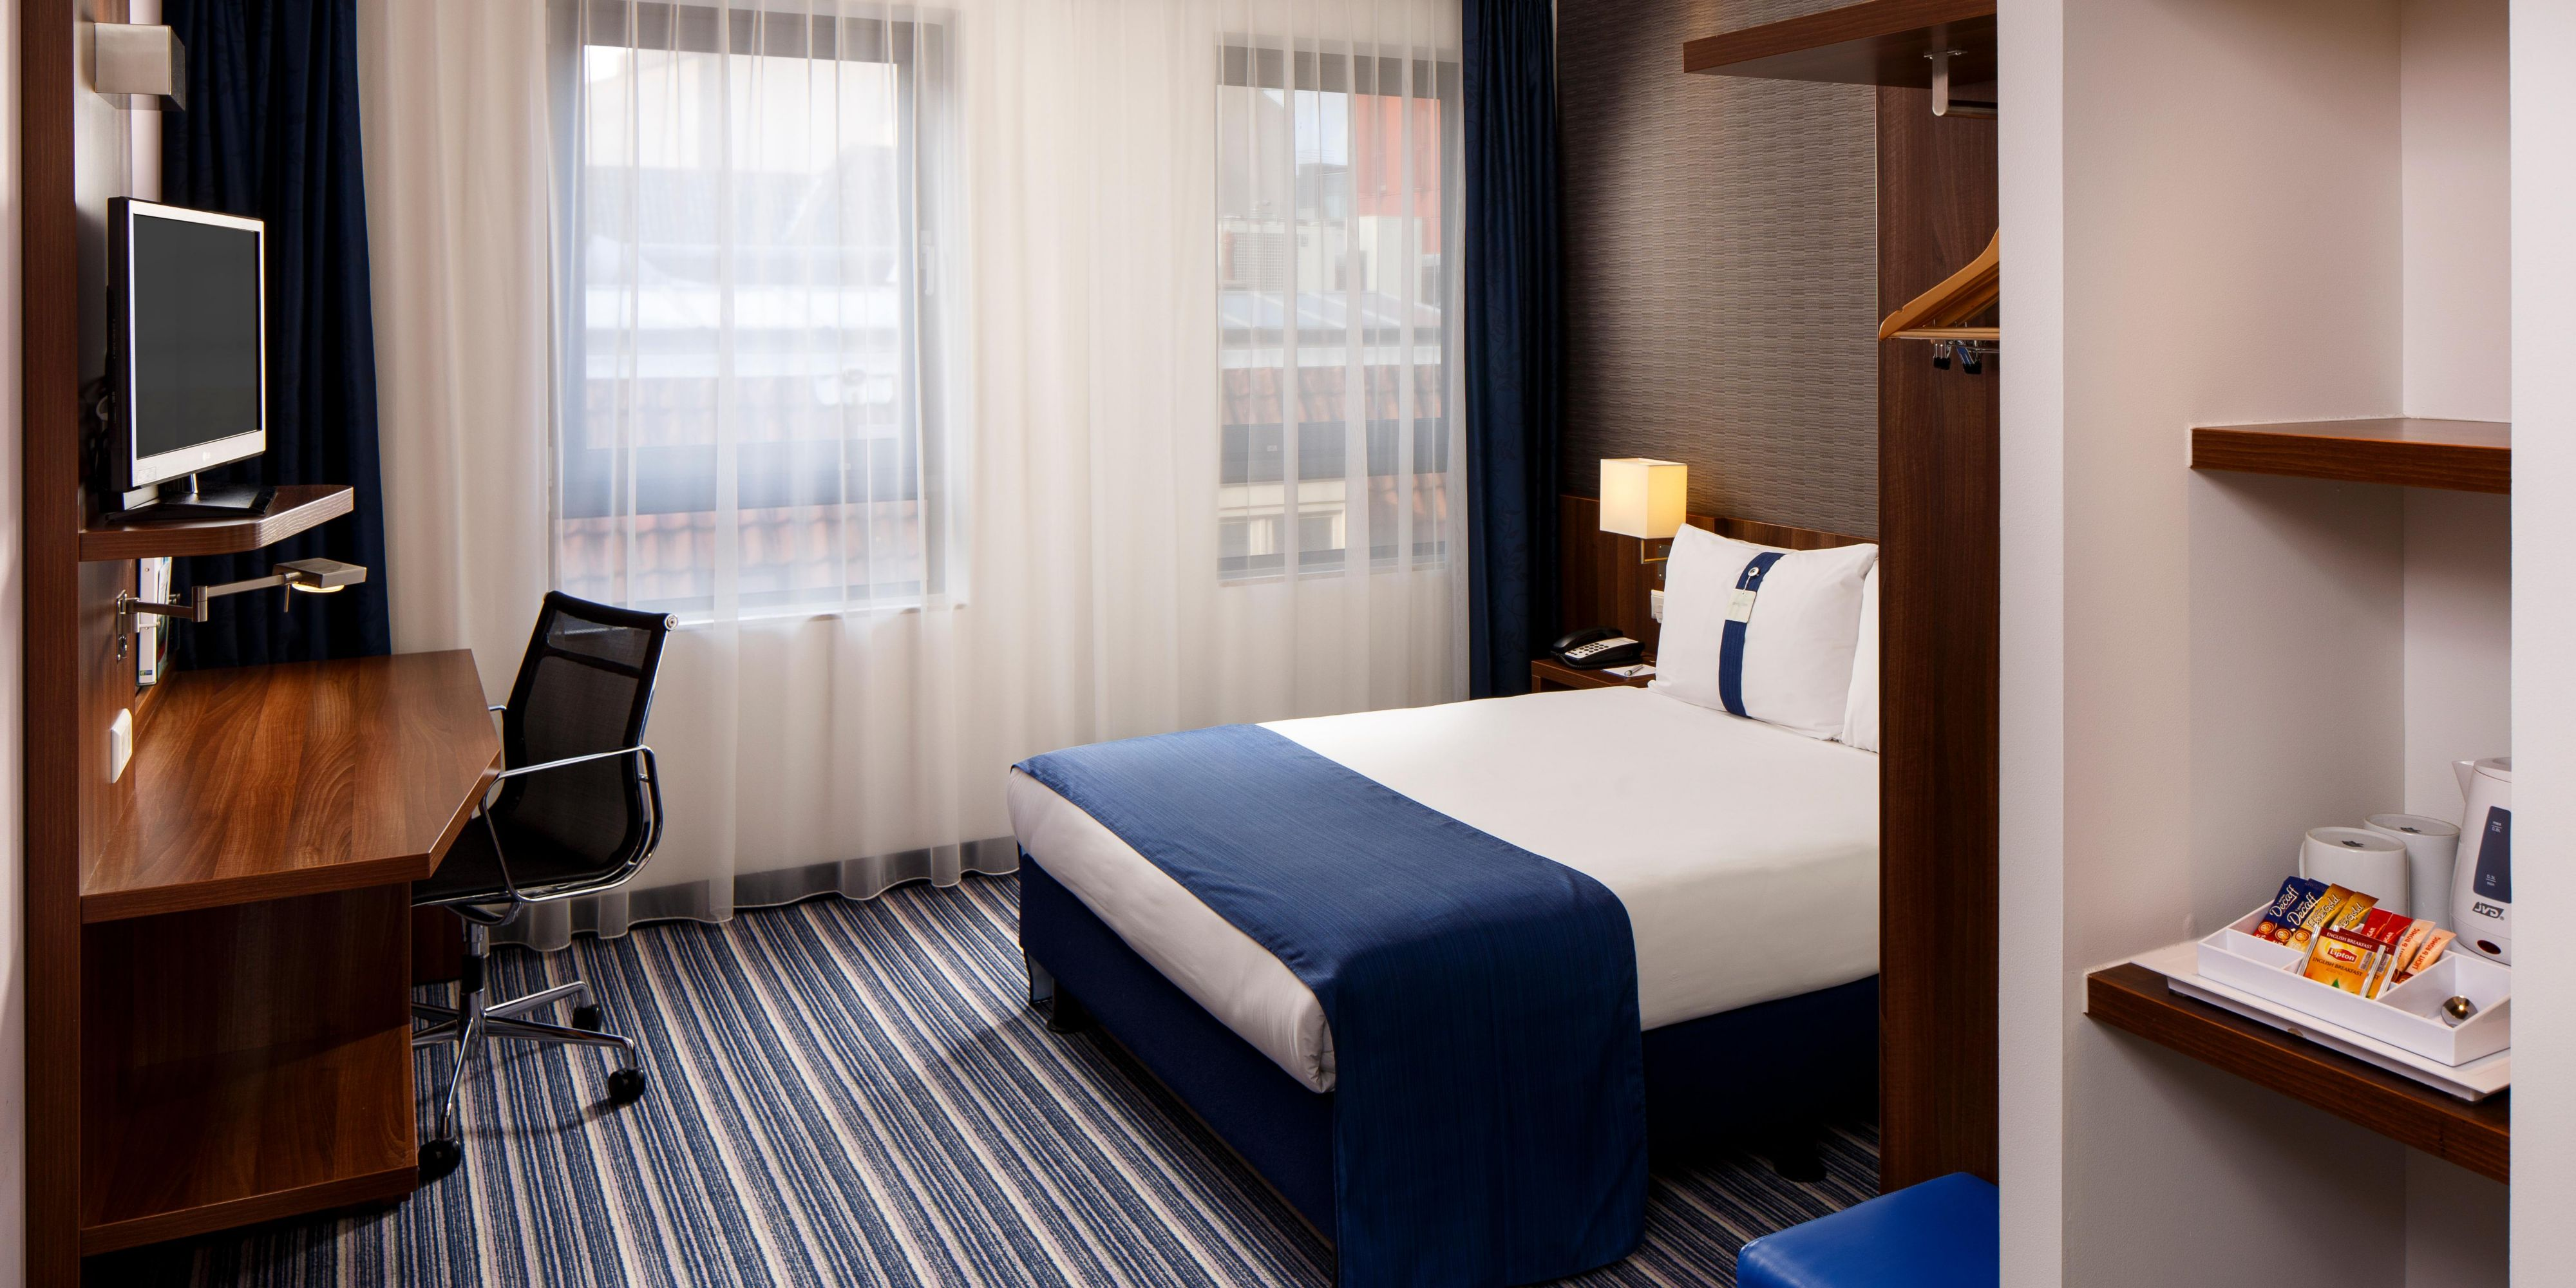 Holiday Inn Express The Hague Parliament Hotel by IHG